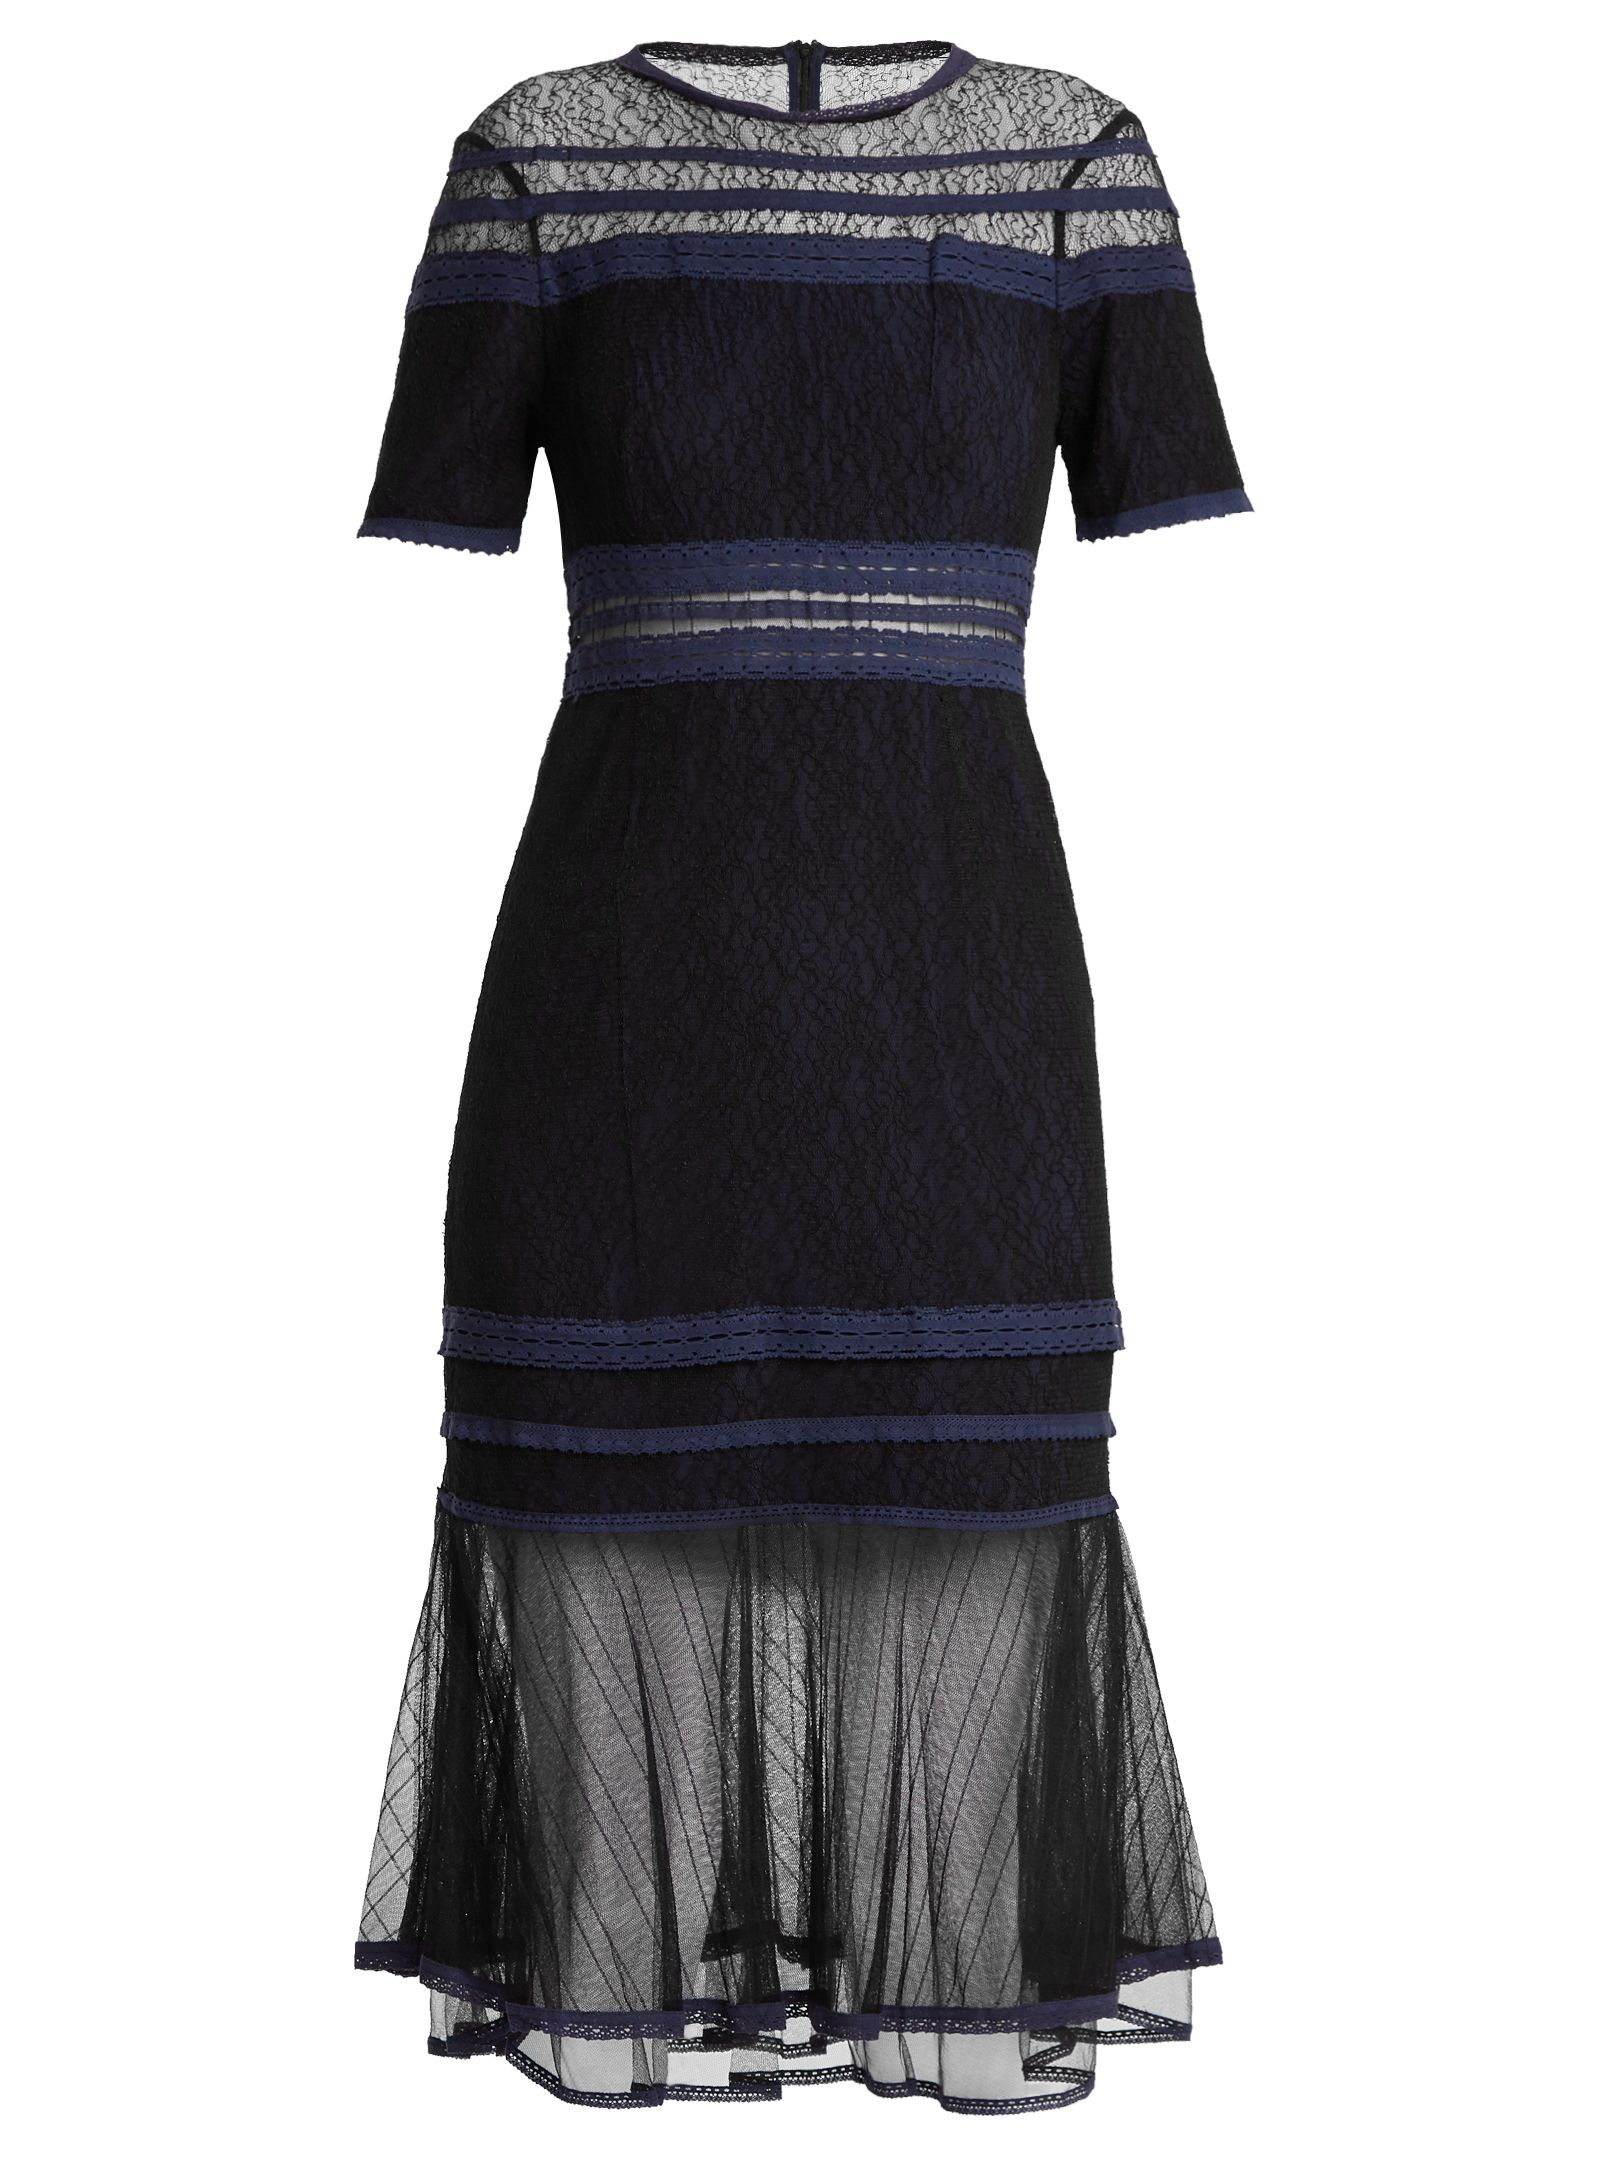 Shortsleeved lacepanel dress panel dress chantilly lace and aw